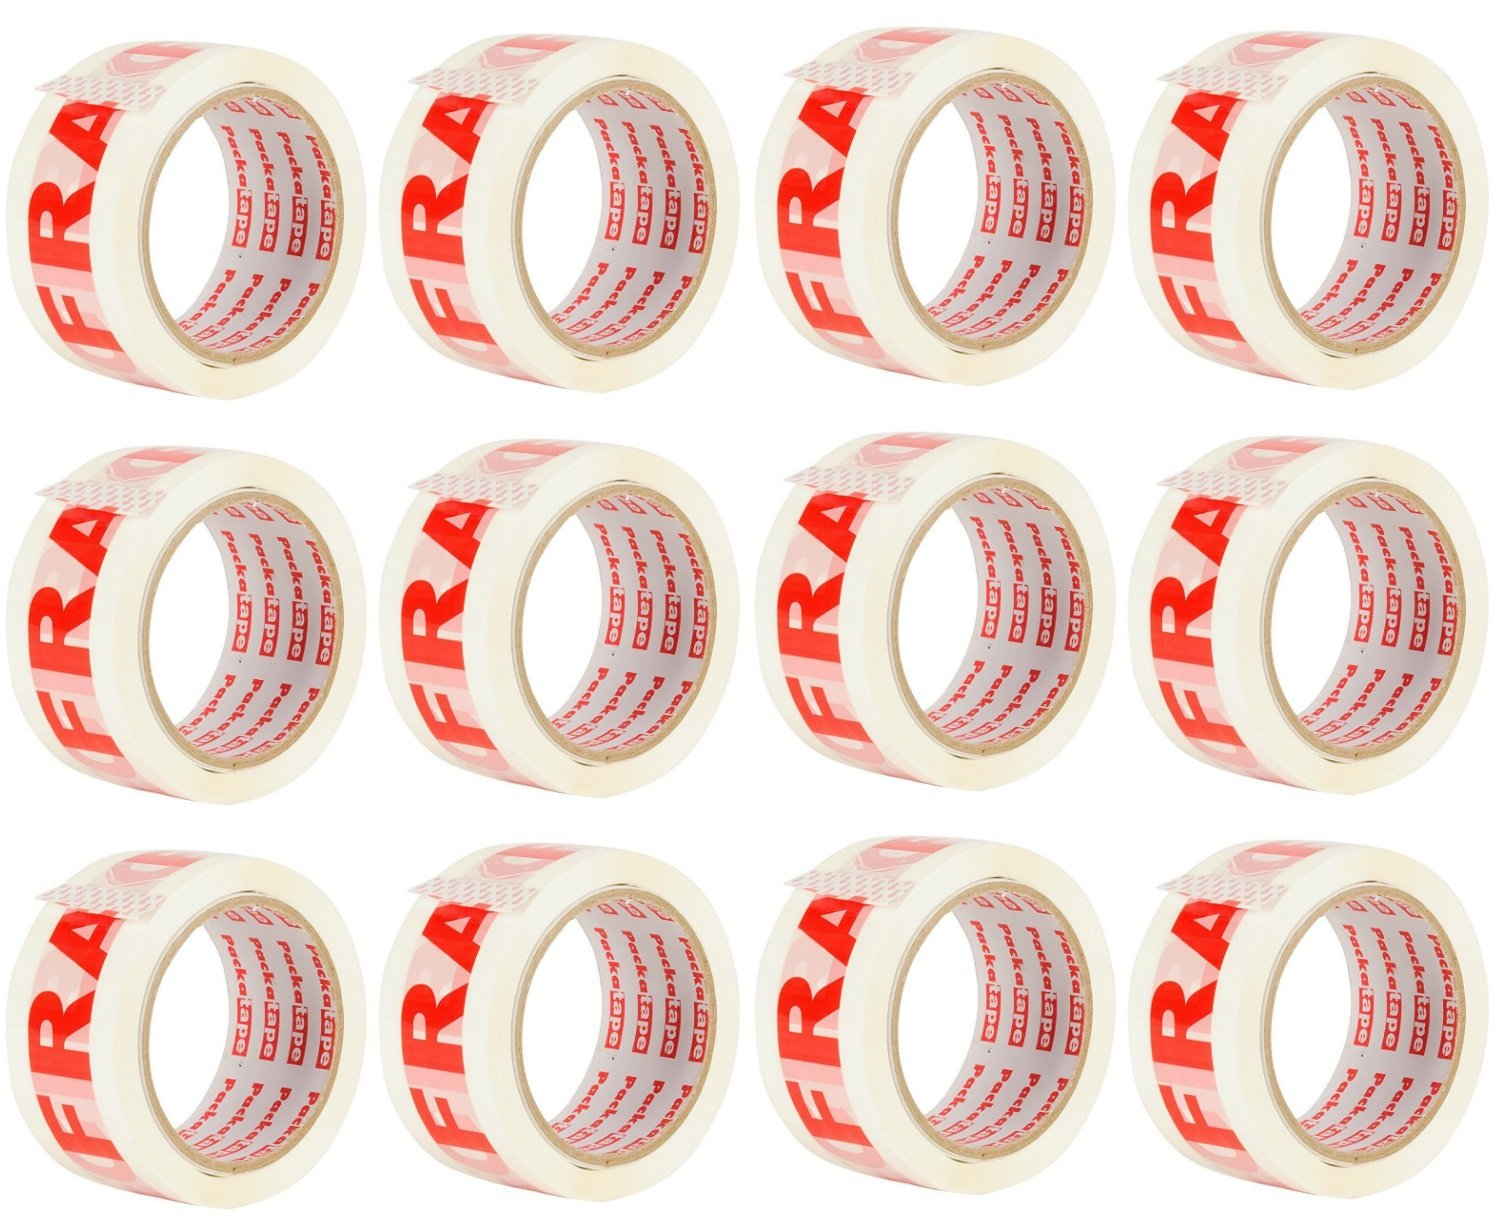 Packatape Fragile Packaging Tape for Parcels and Boxes. This 12 roll Pack of Heavy Duty Fragile Packing Tape Provides a Strong, Secure and Sticky Seal for Your Boxes, 12 Rolls 48MM x 66M